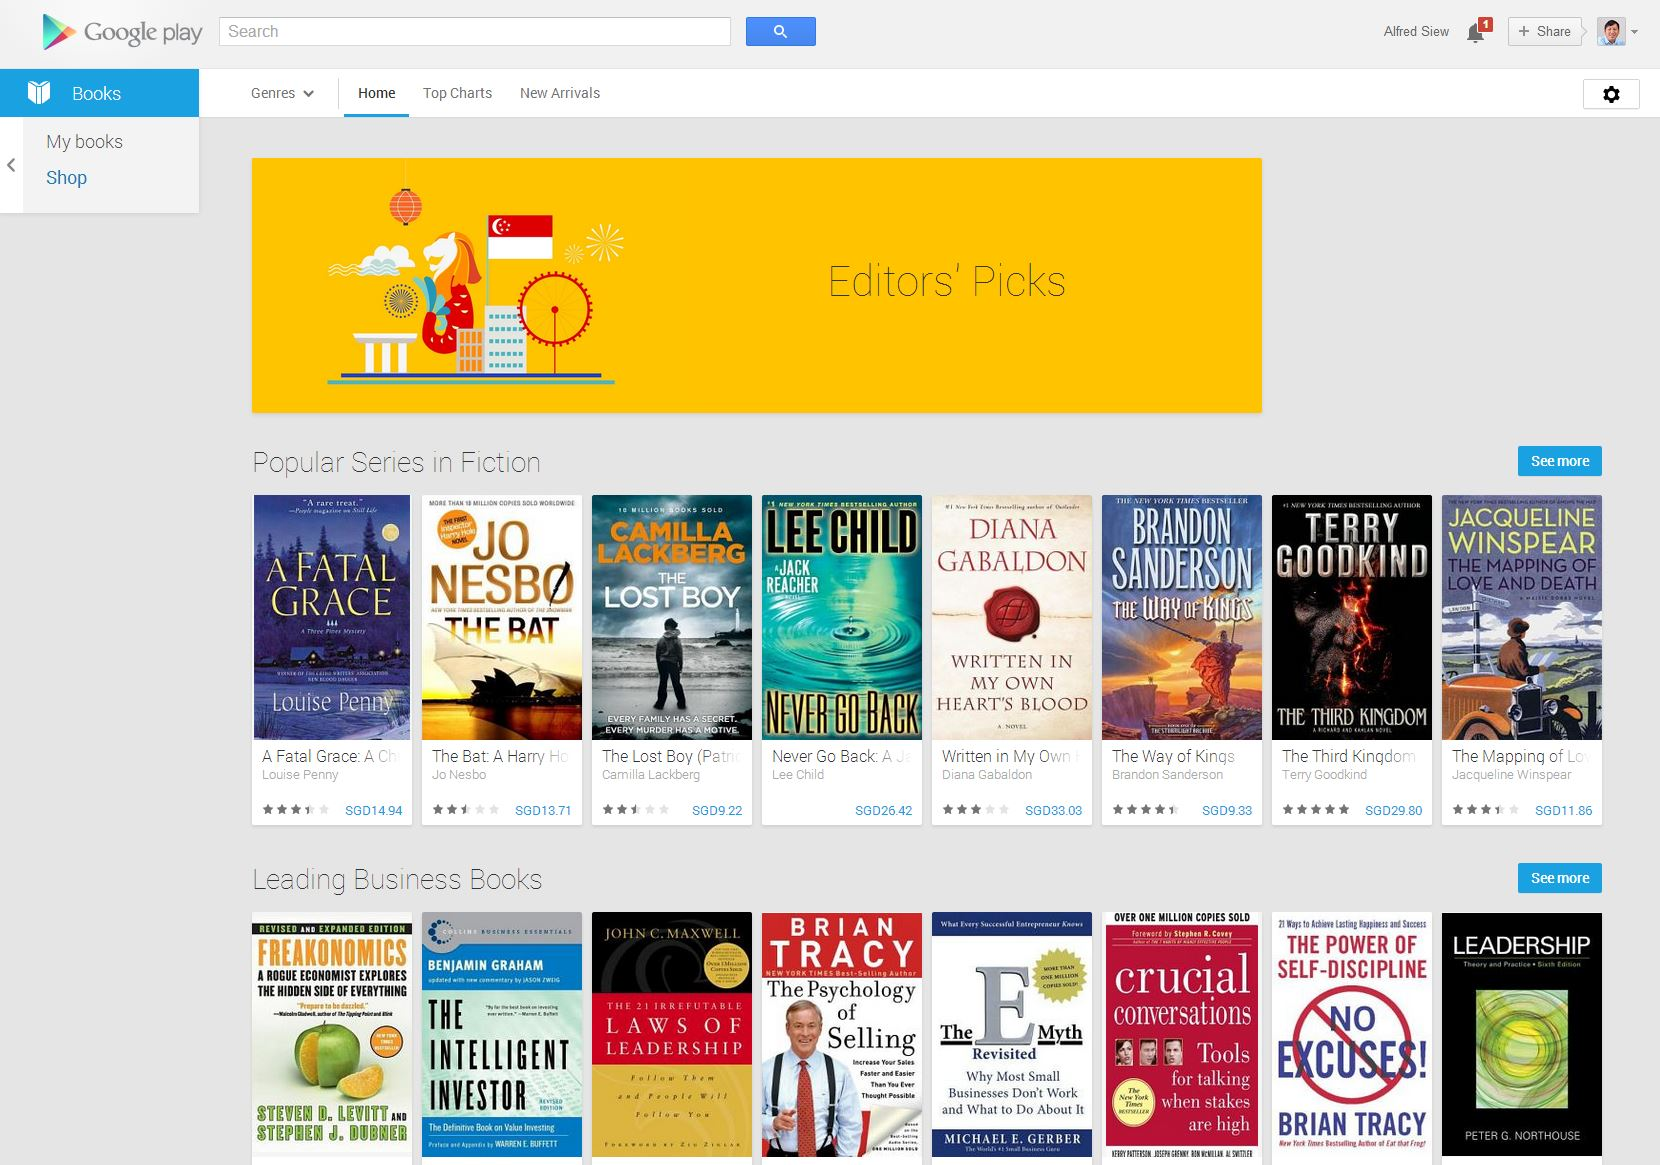 Books on Google Play now in Singapore, while other e-bookstores close